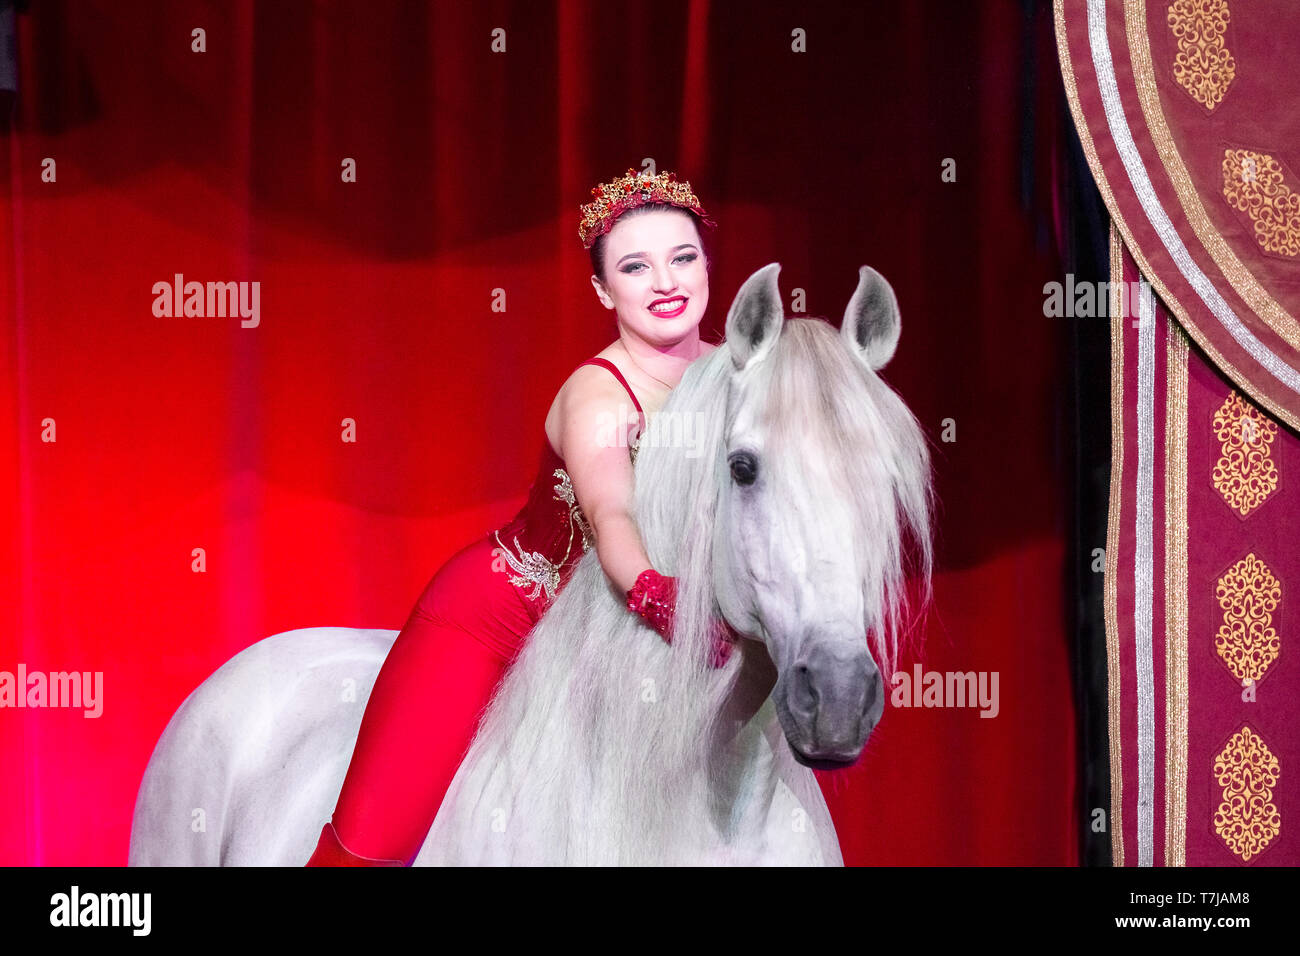 Pura Raza Espanola, Andalusian. Gray stallion and performer Sara Biasini-Berousek in a circus, standing in front of a red curtain. Austria - Stock Image